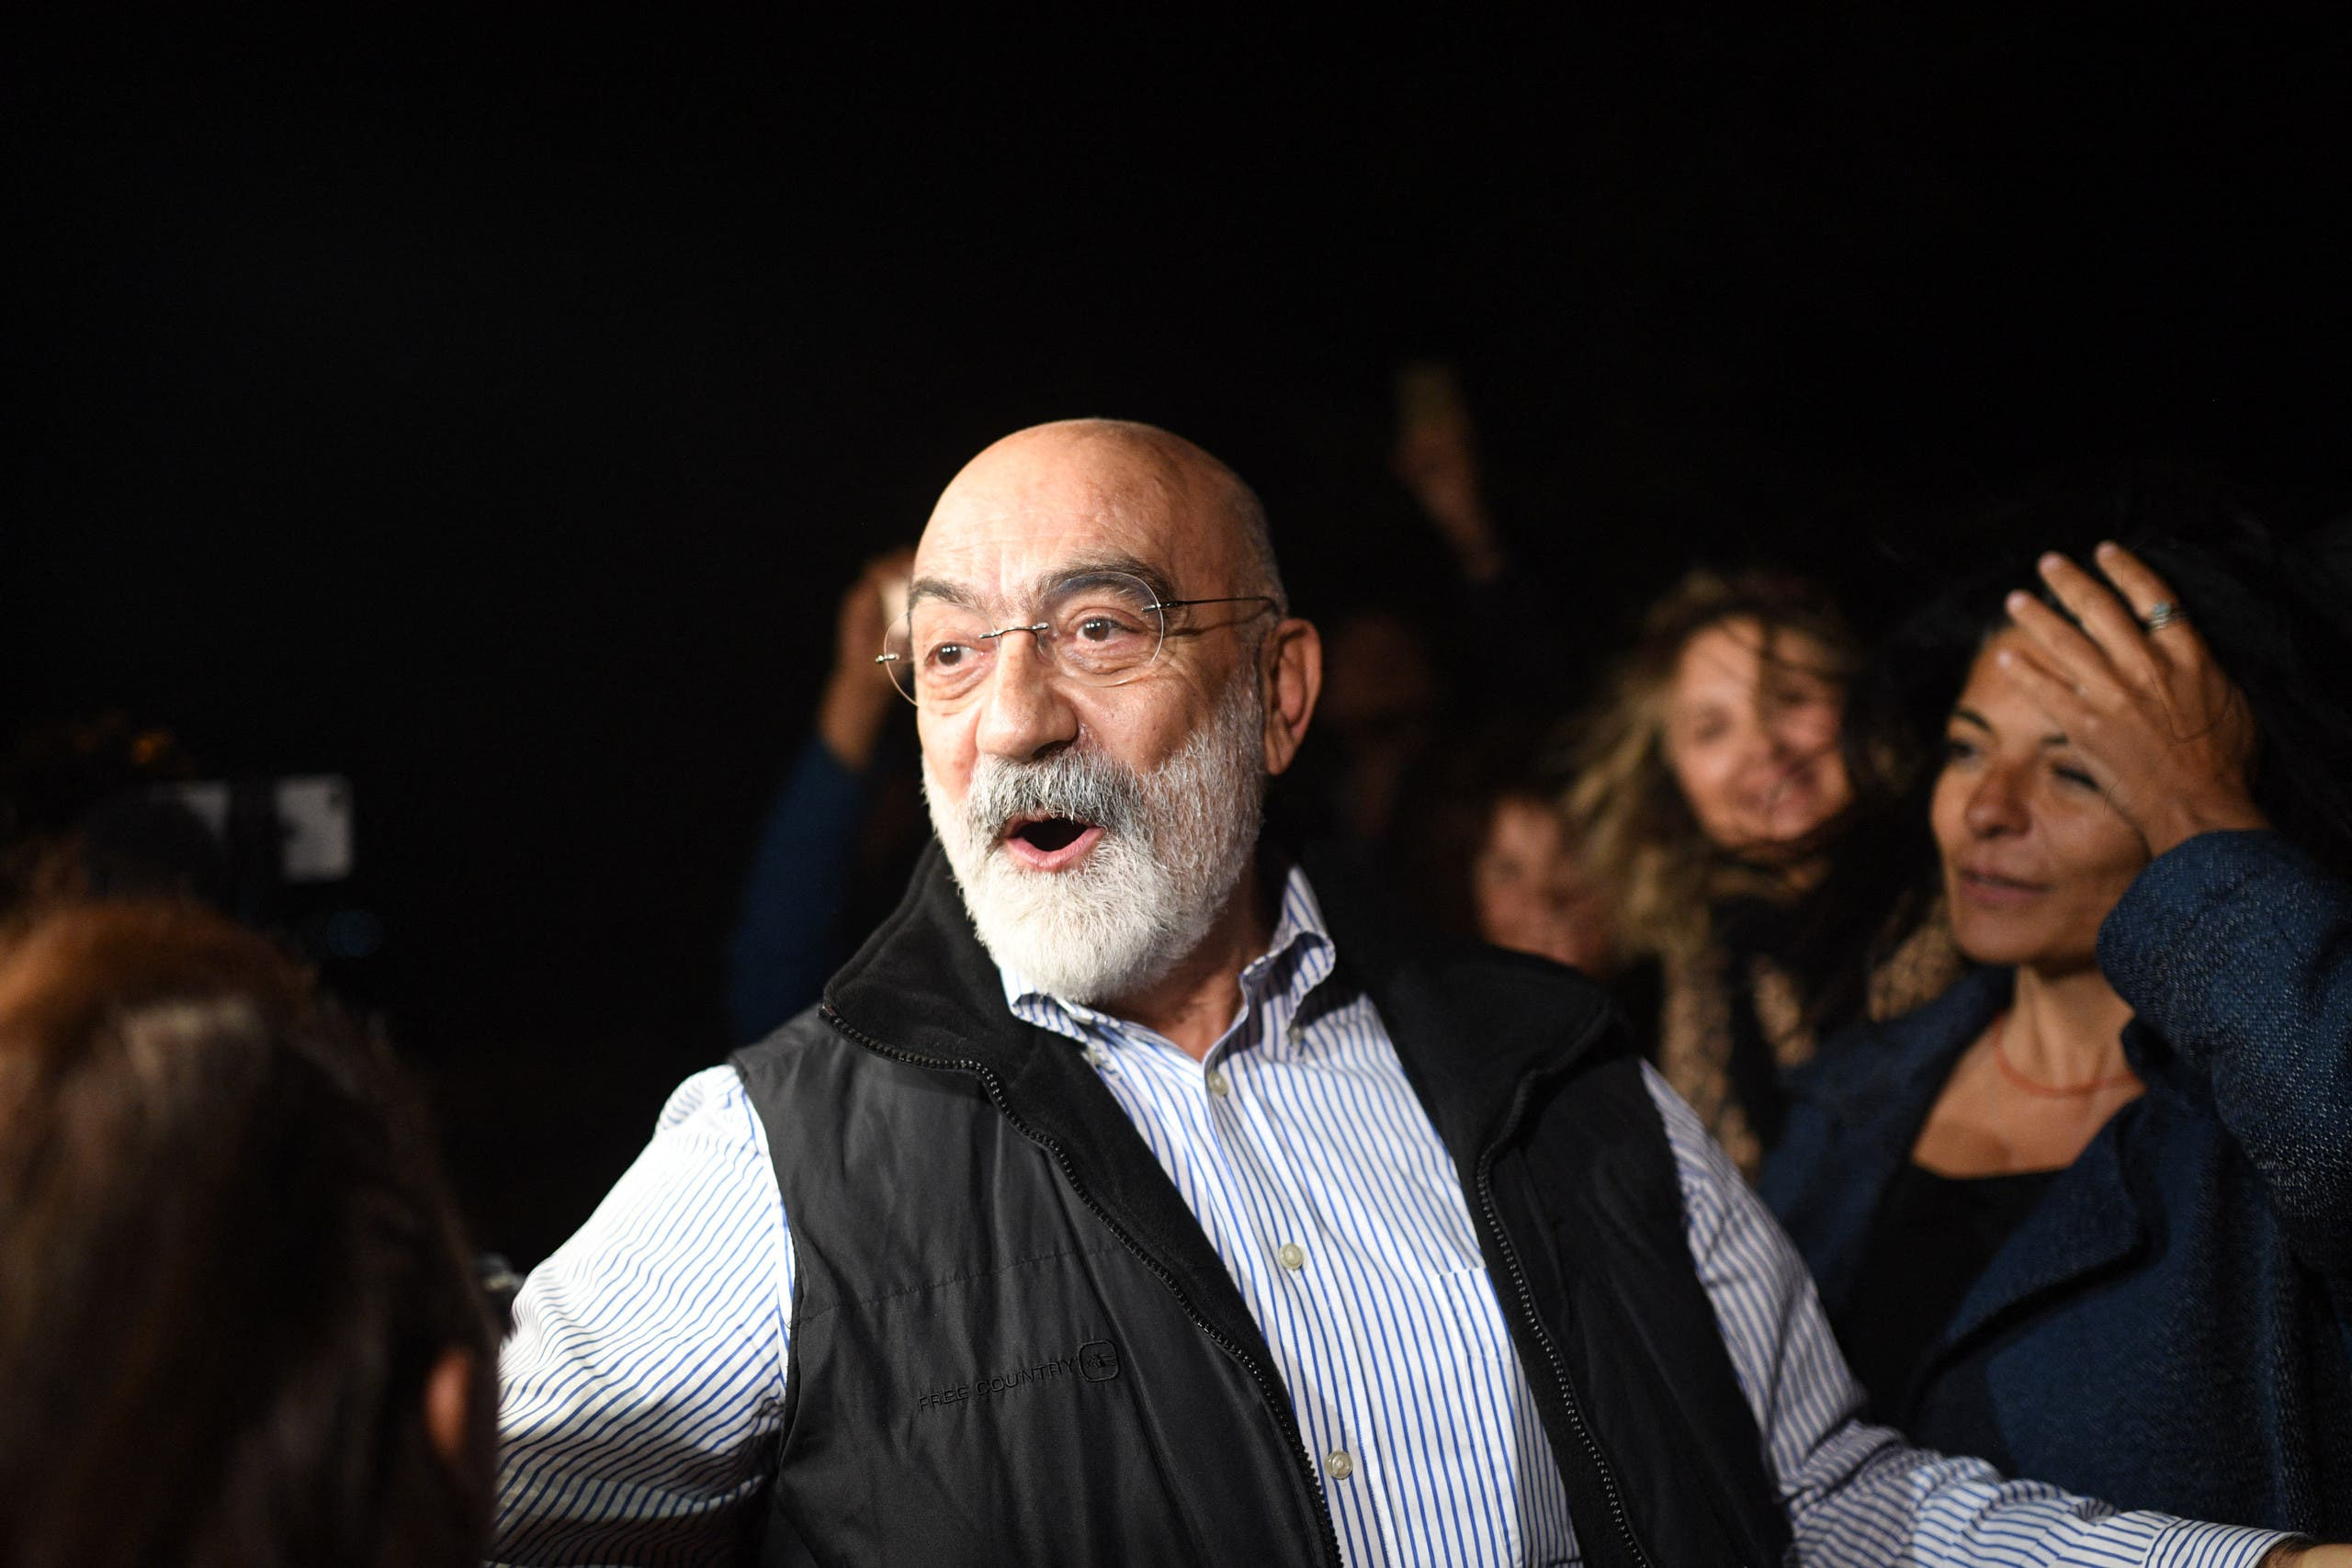 Turkish journalist and writer Ahmet Altan reacts after being realised on November 4, 2019. A Turkish court ordered journalist Ahmet Altan to be released on November 4, 2019, under judicial supervision despite sentencing him to more than 10 years in prison, state news agency Anadolu reported. (AFP)